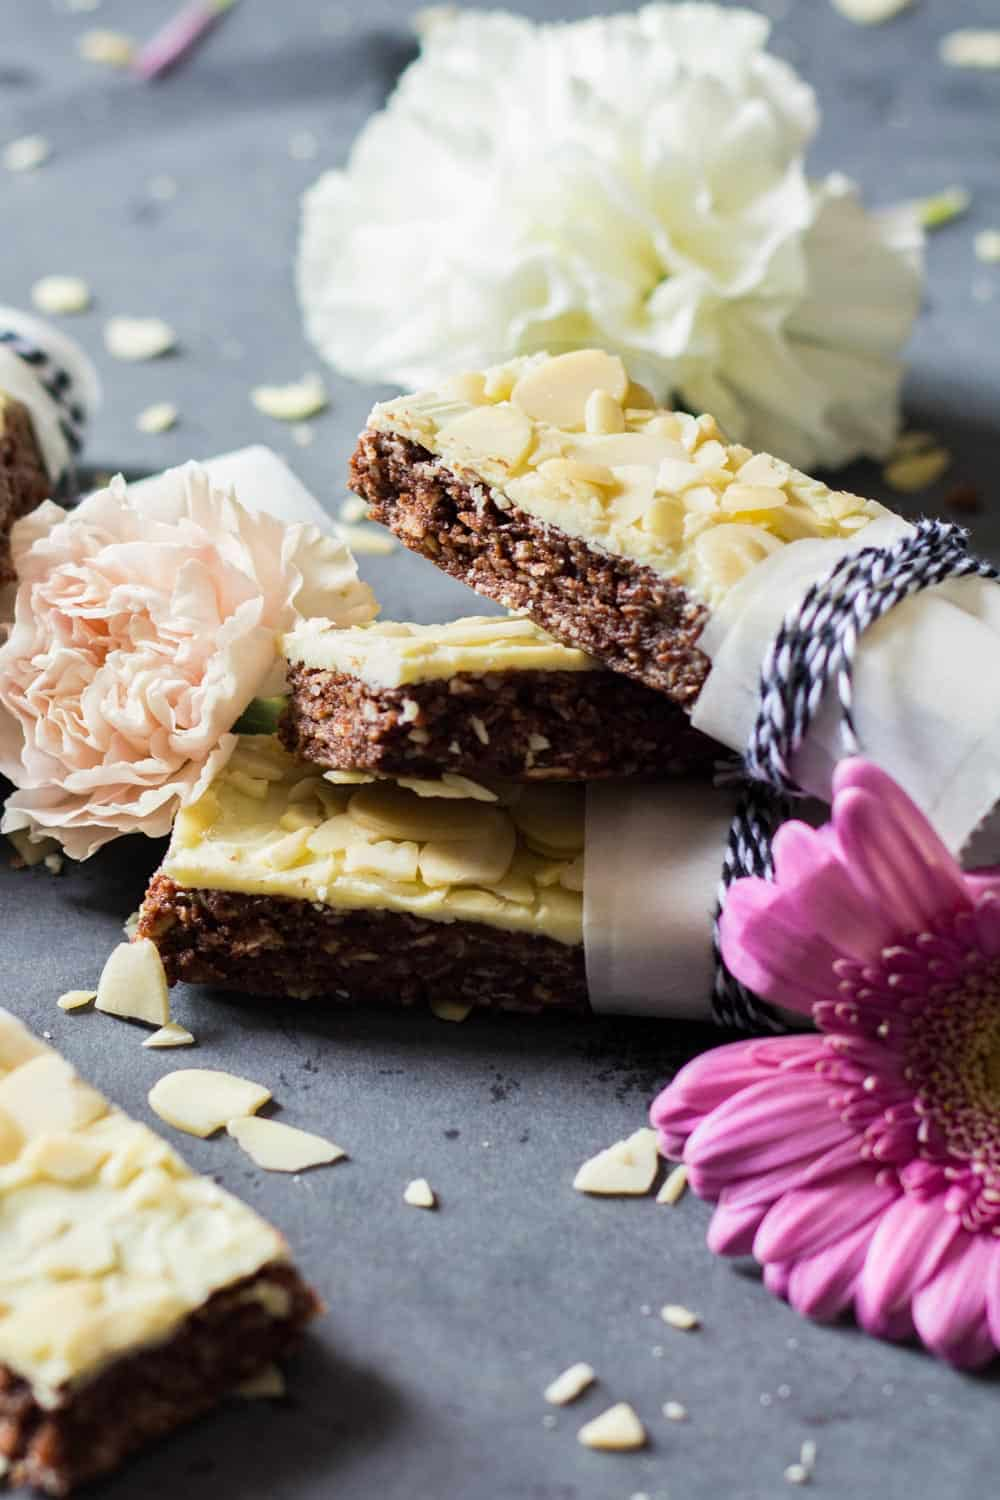 Almond Granola Bars stacked unevenly on a counter decorated with fresh flowers and sliced almonds.